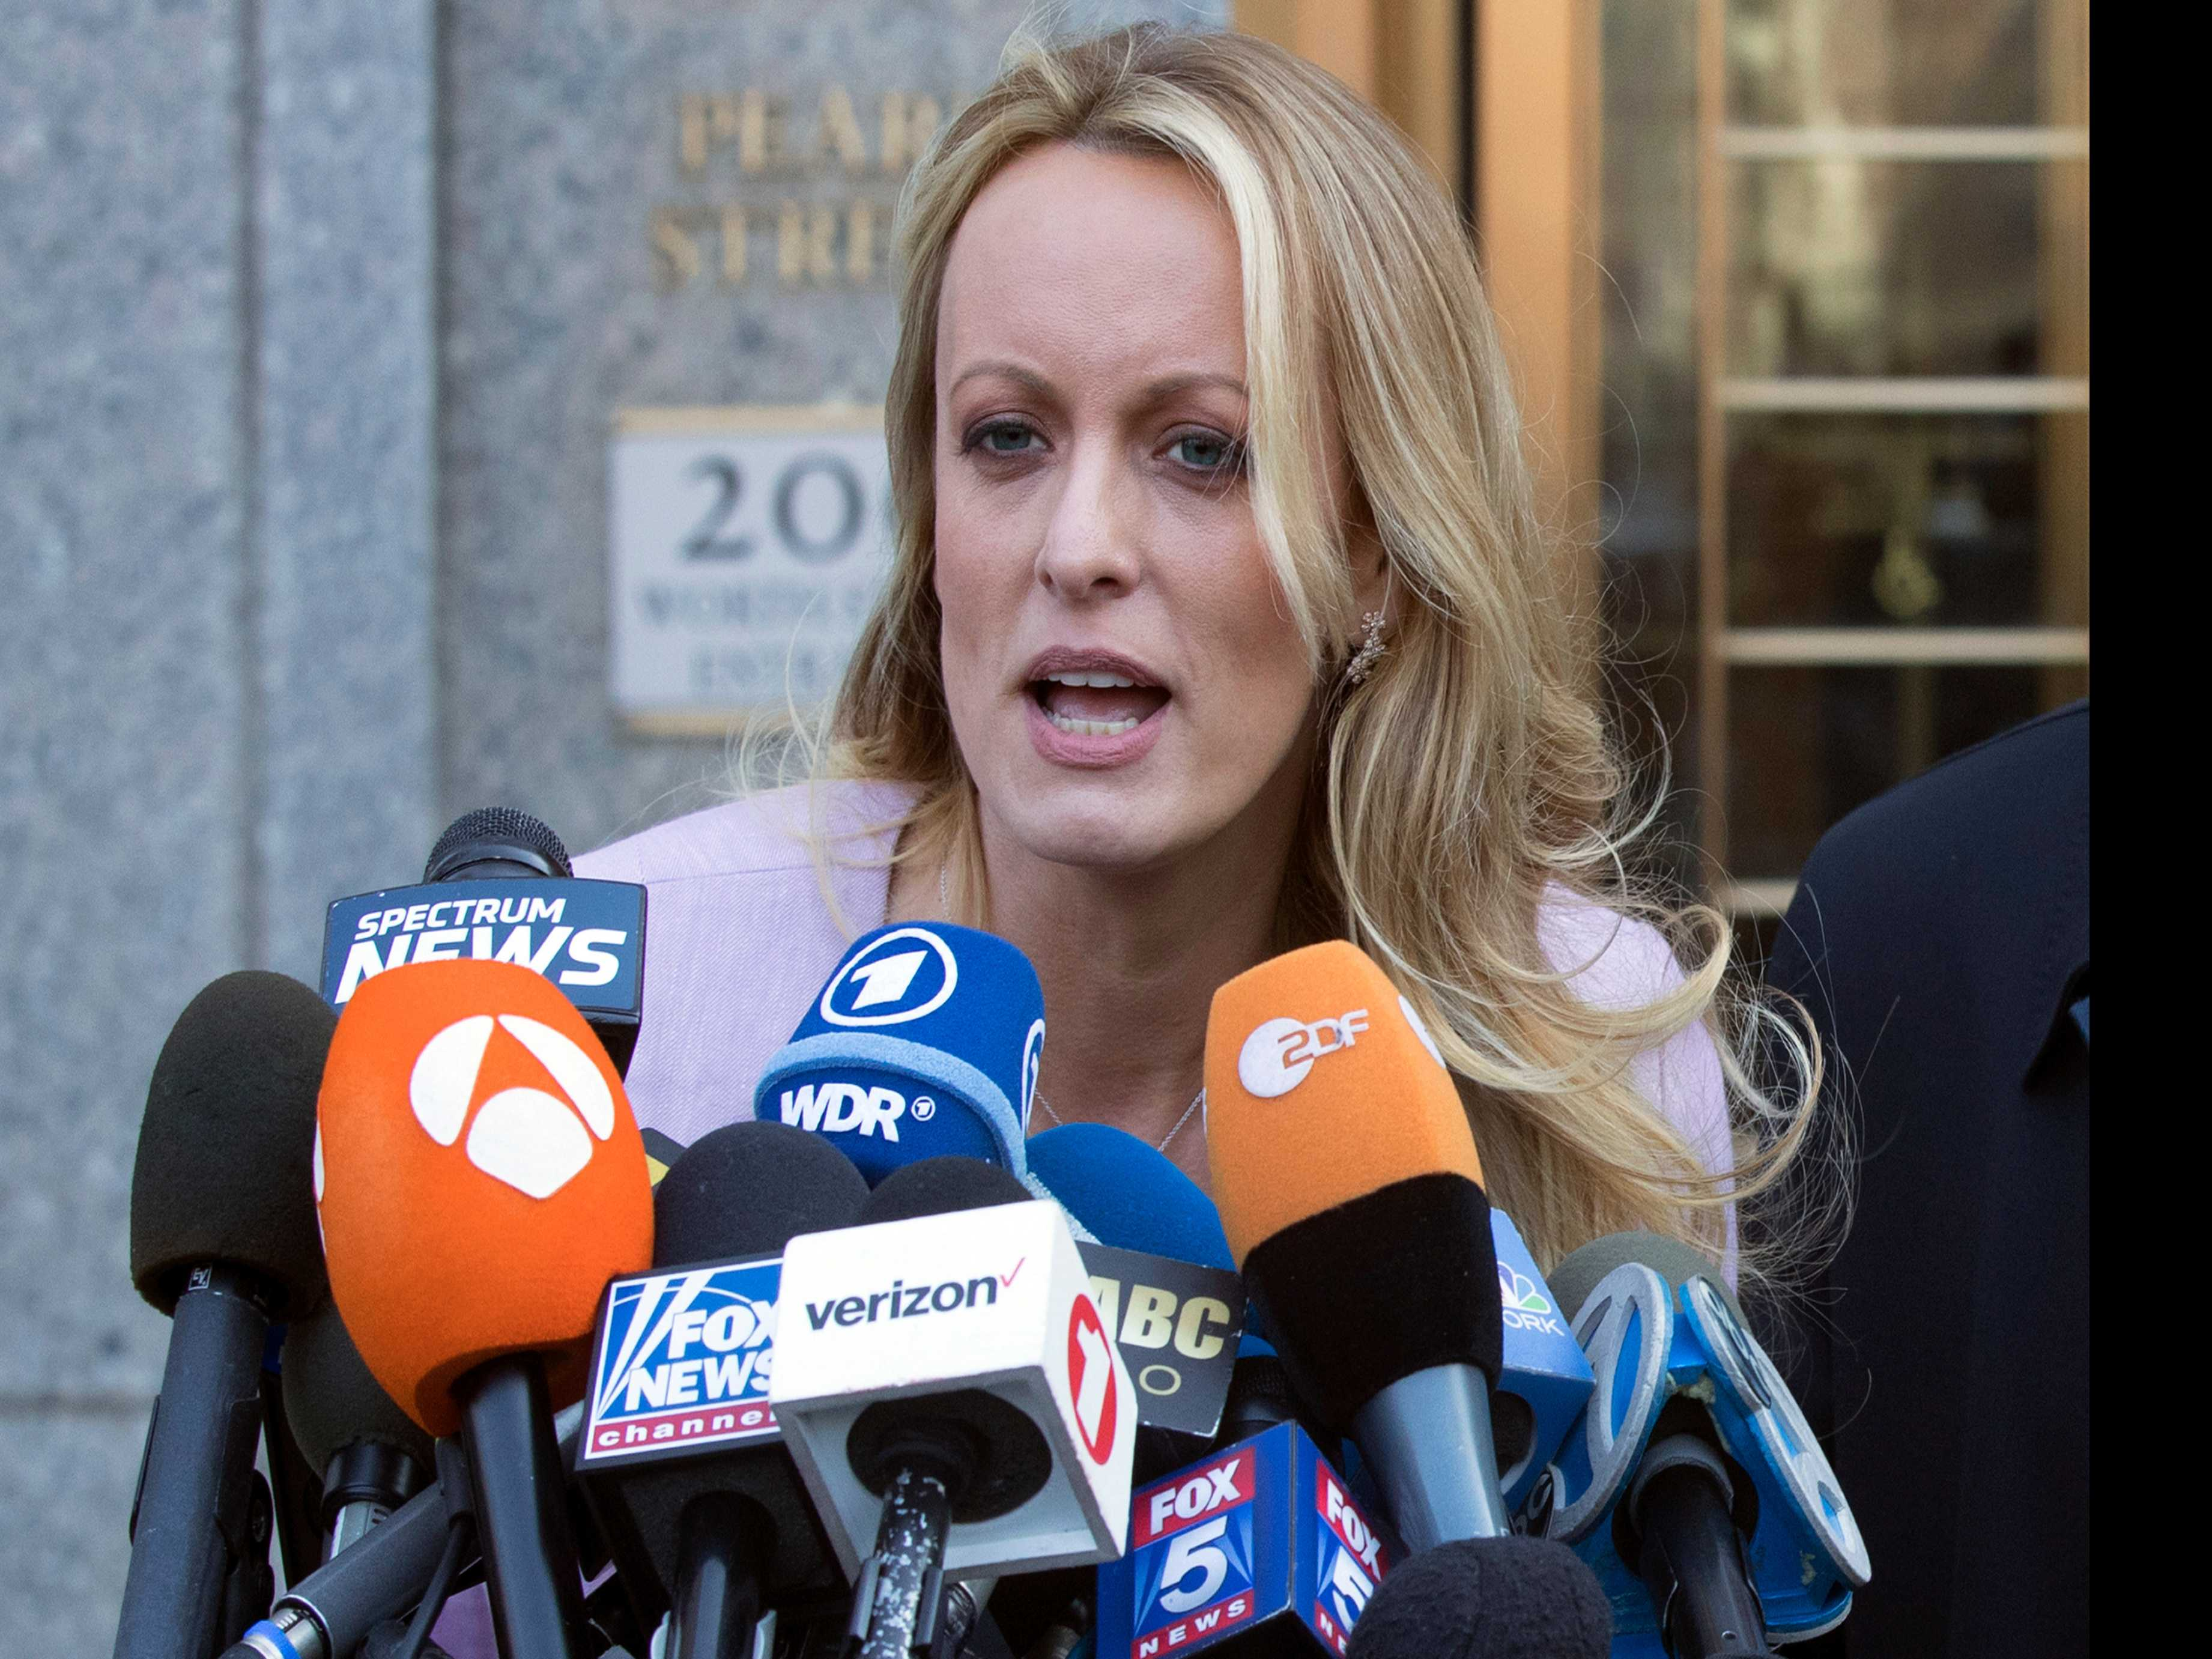 Judge to Hear Arguments About Delaying Stormy Daniels Case